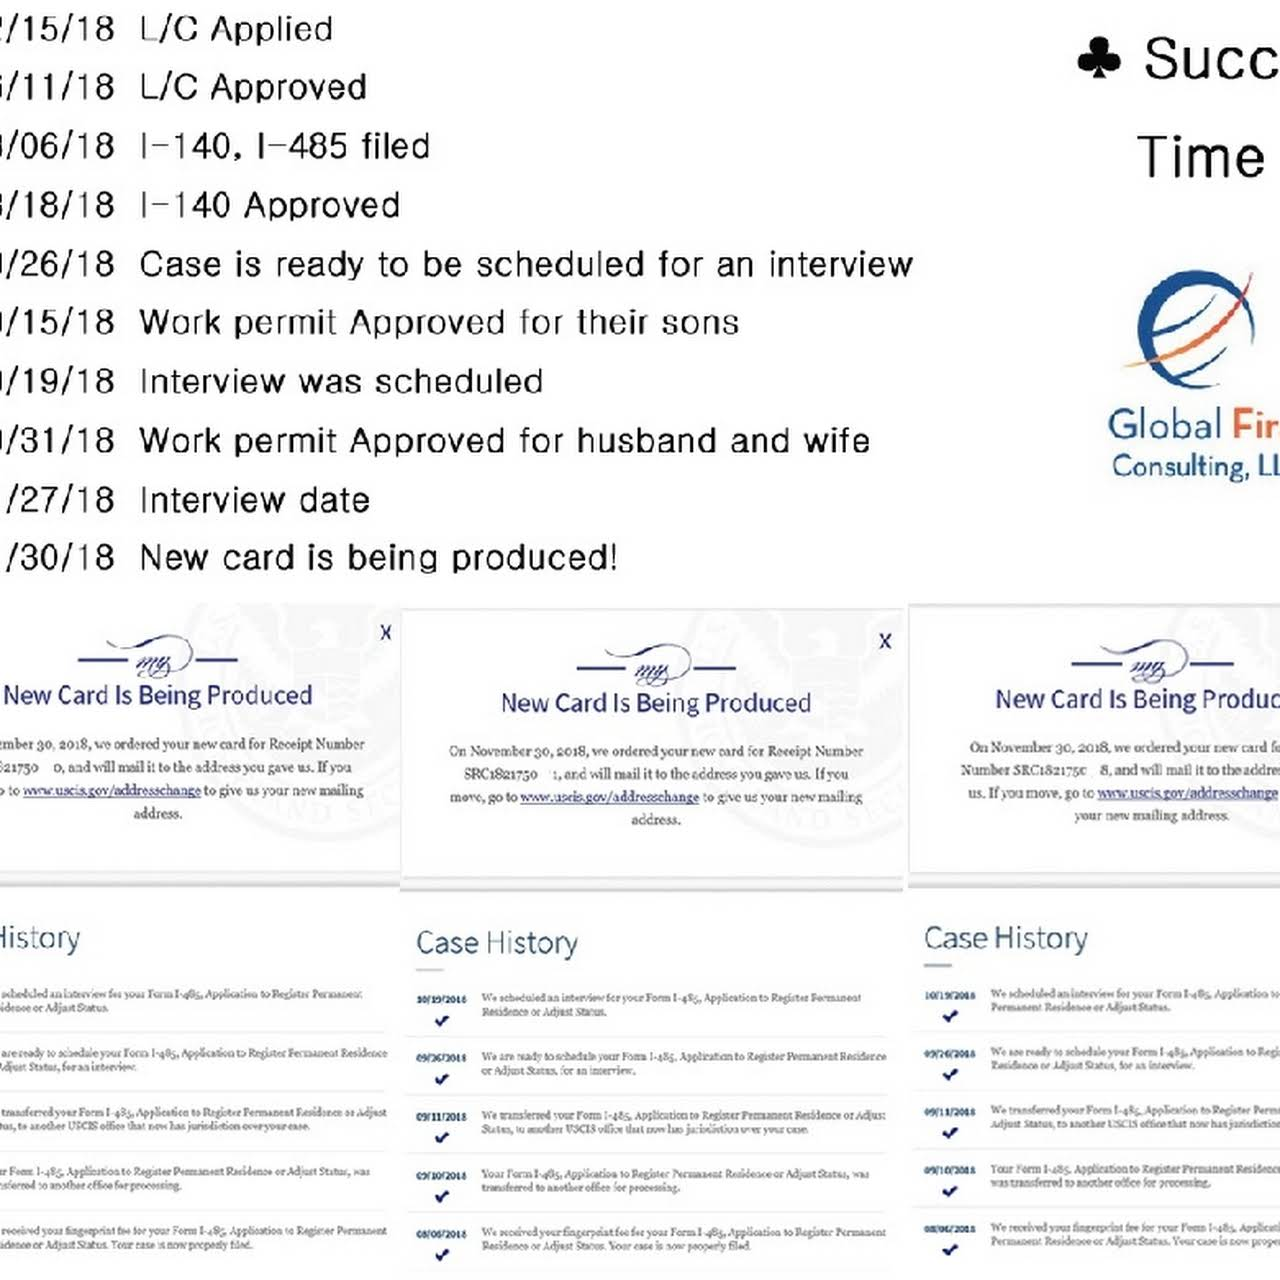 Global First Consulting LLC - Consultant in Suwanee